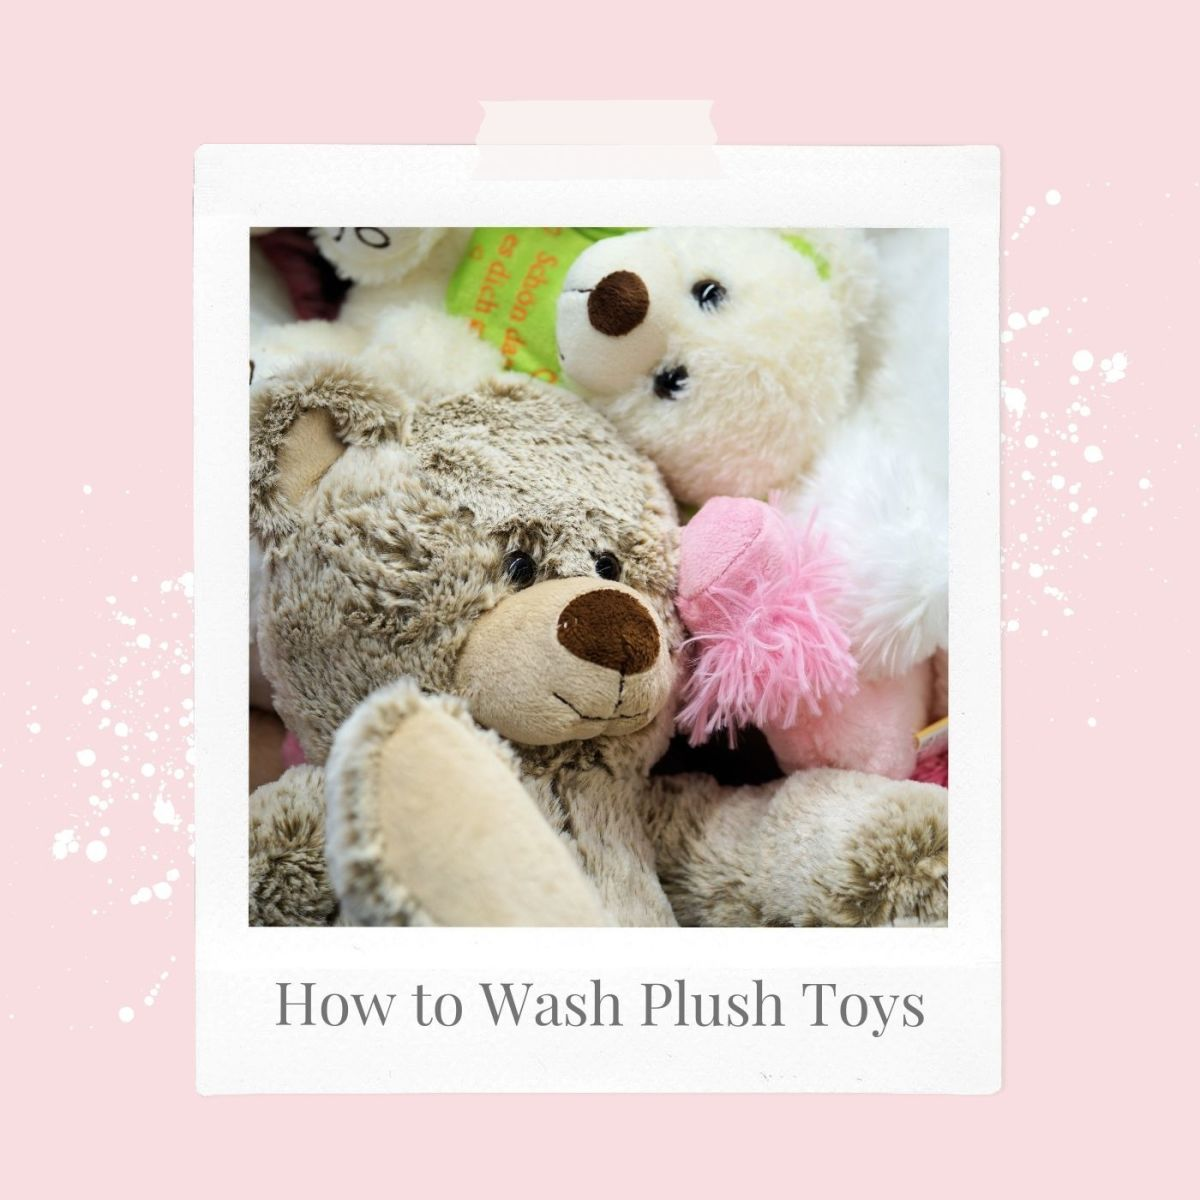 Everyone loves a good plush toy animal!